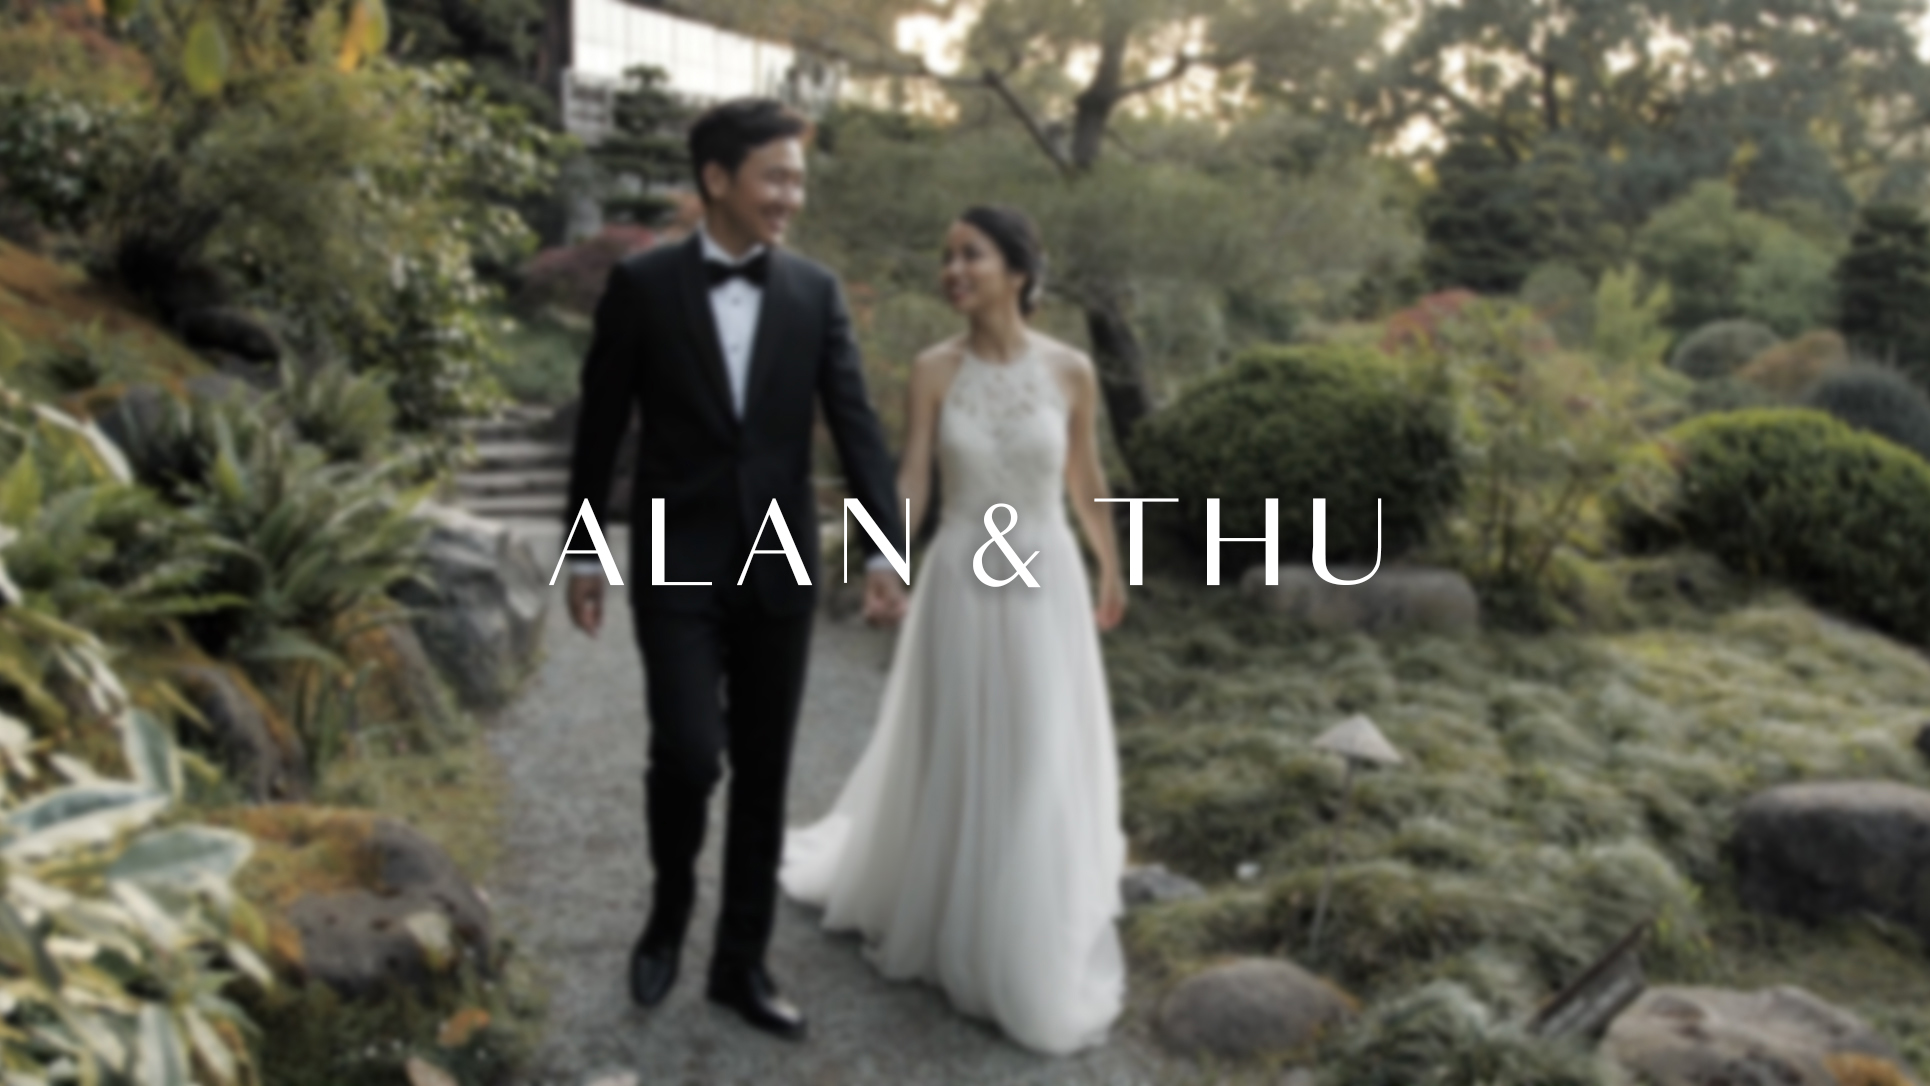 Alan + Thu | Saratoga, California | Hakone Estate Gardens